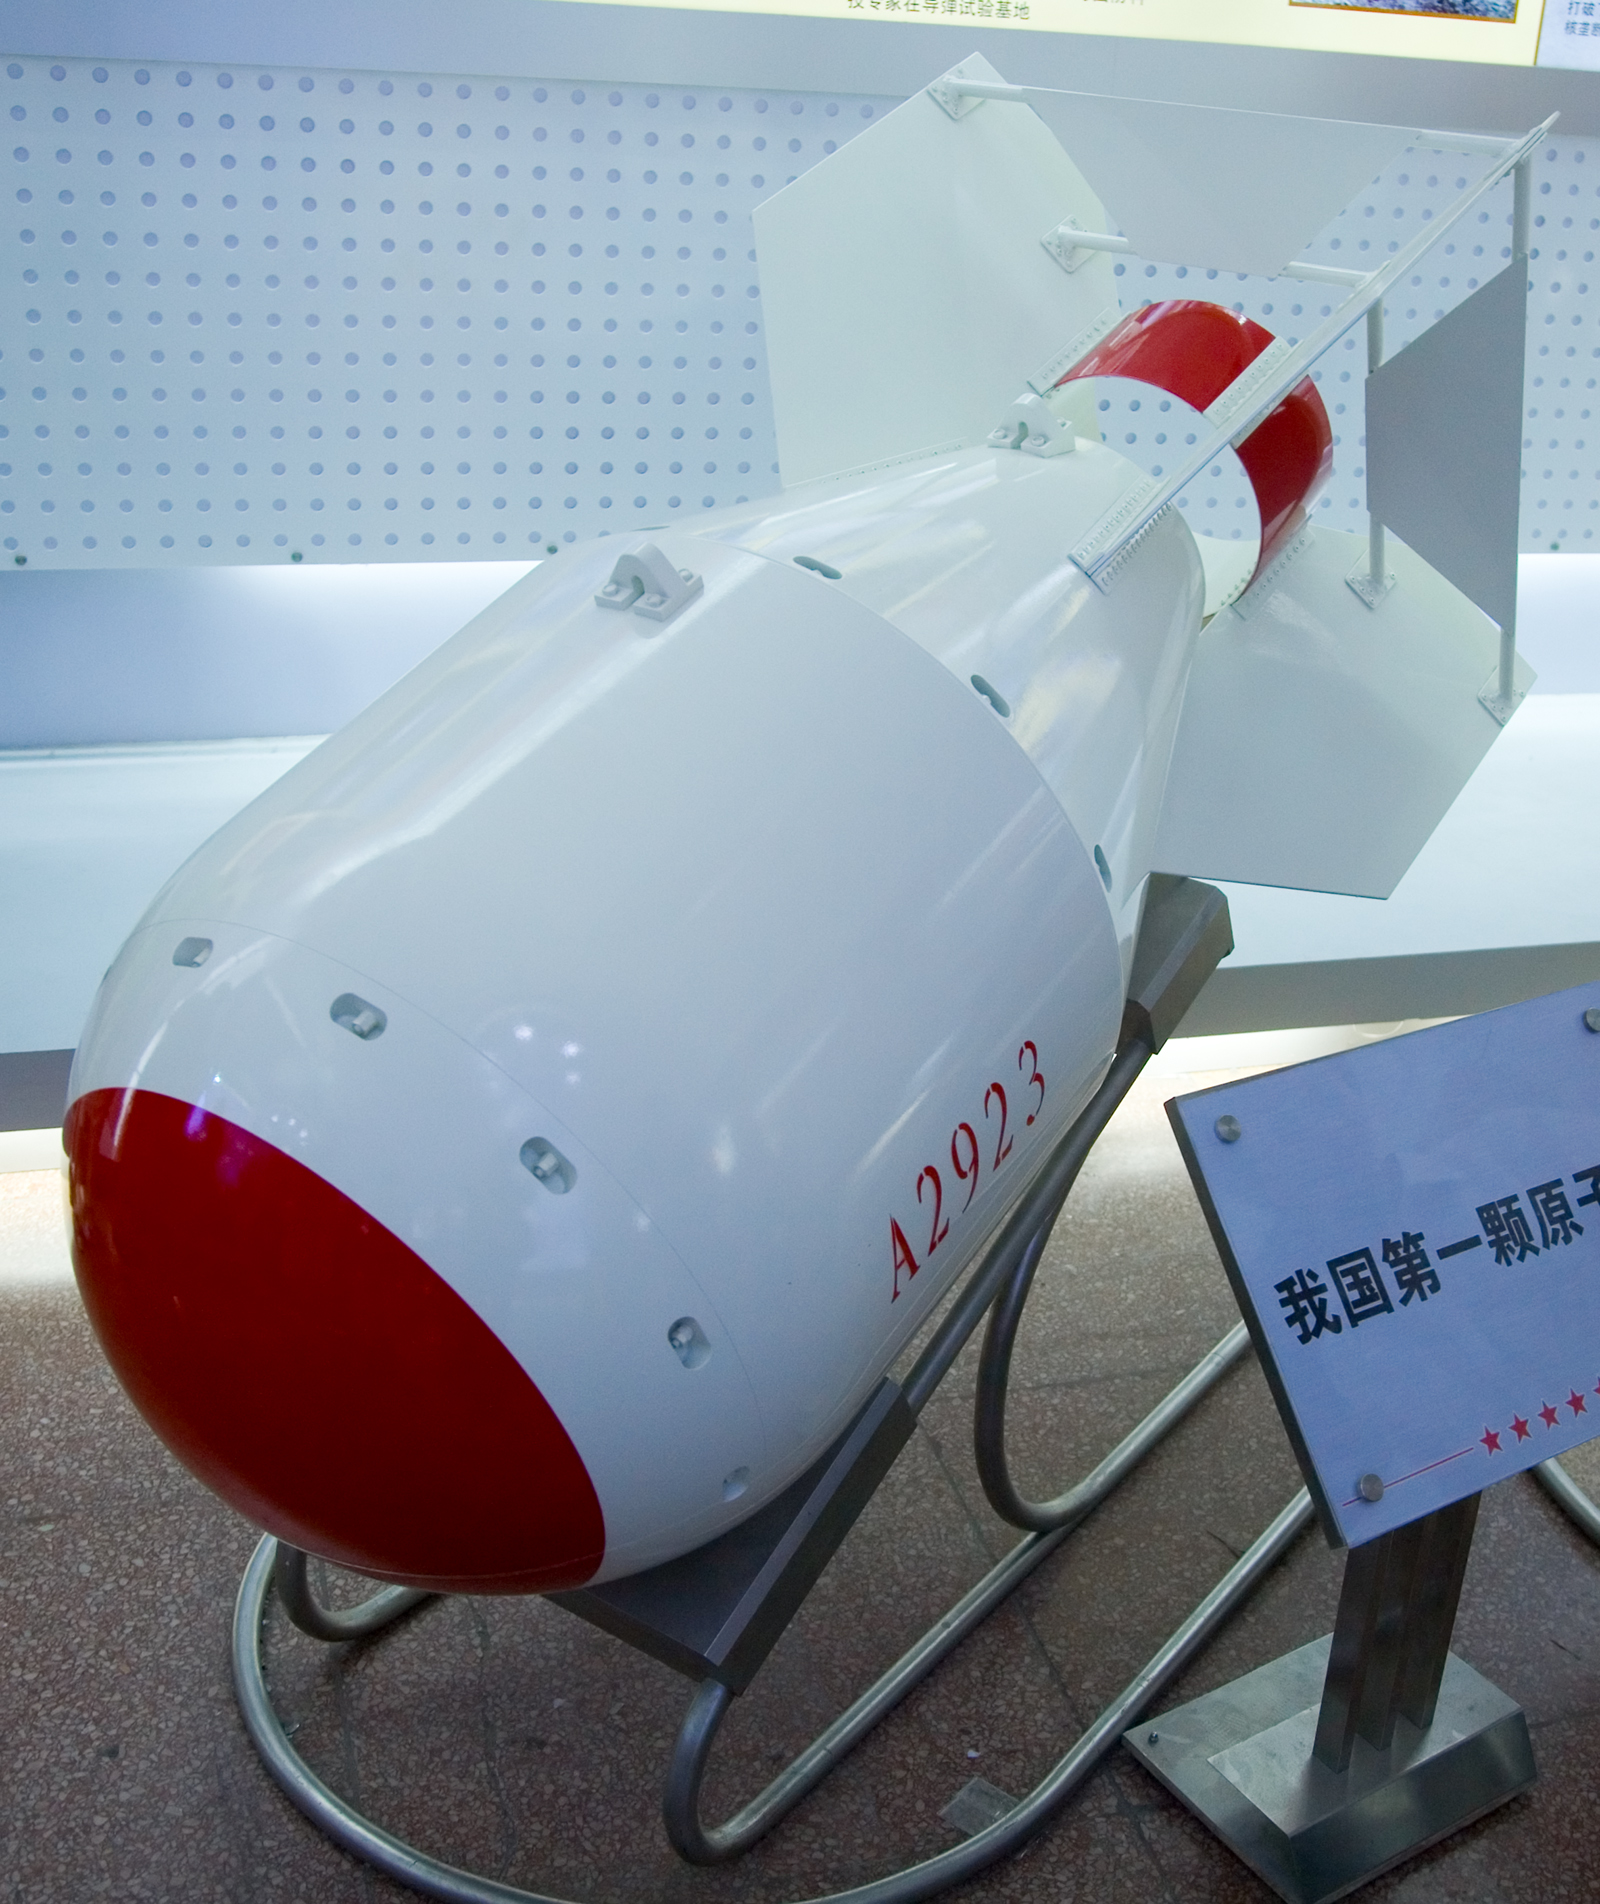 Chinese nuclear bomb - A2923